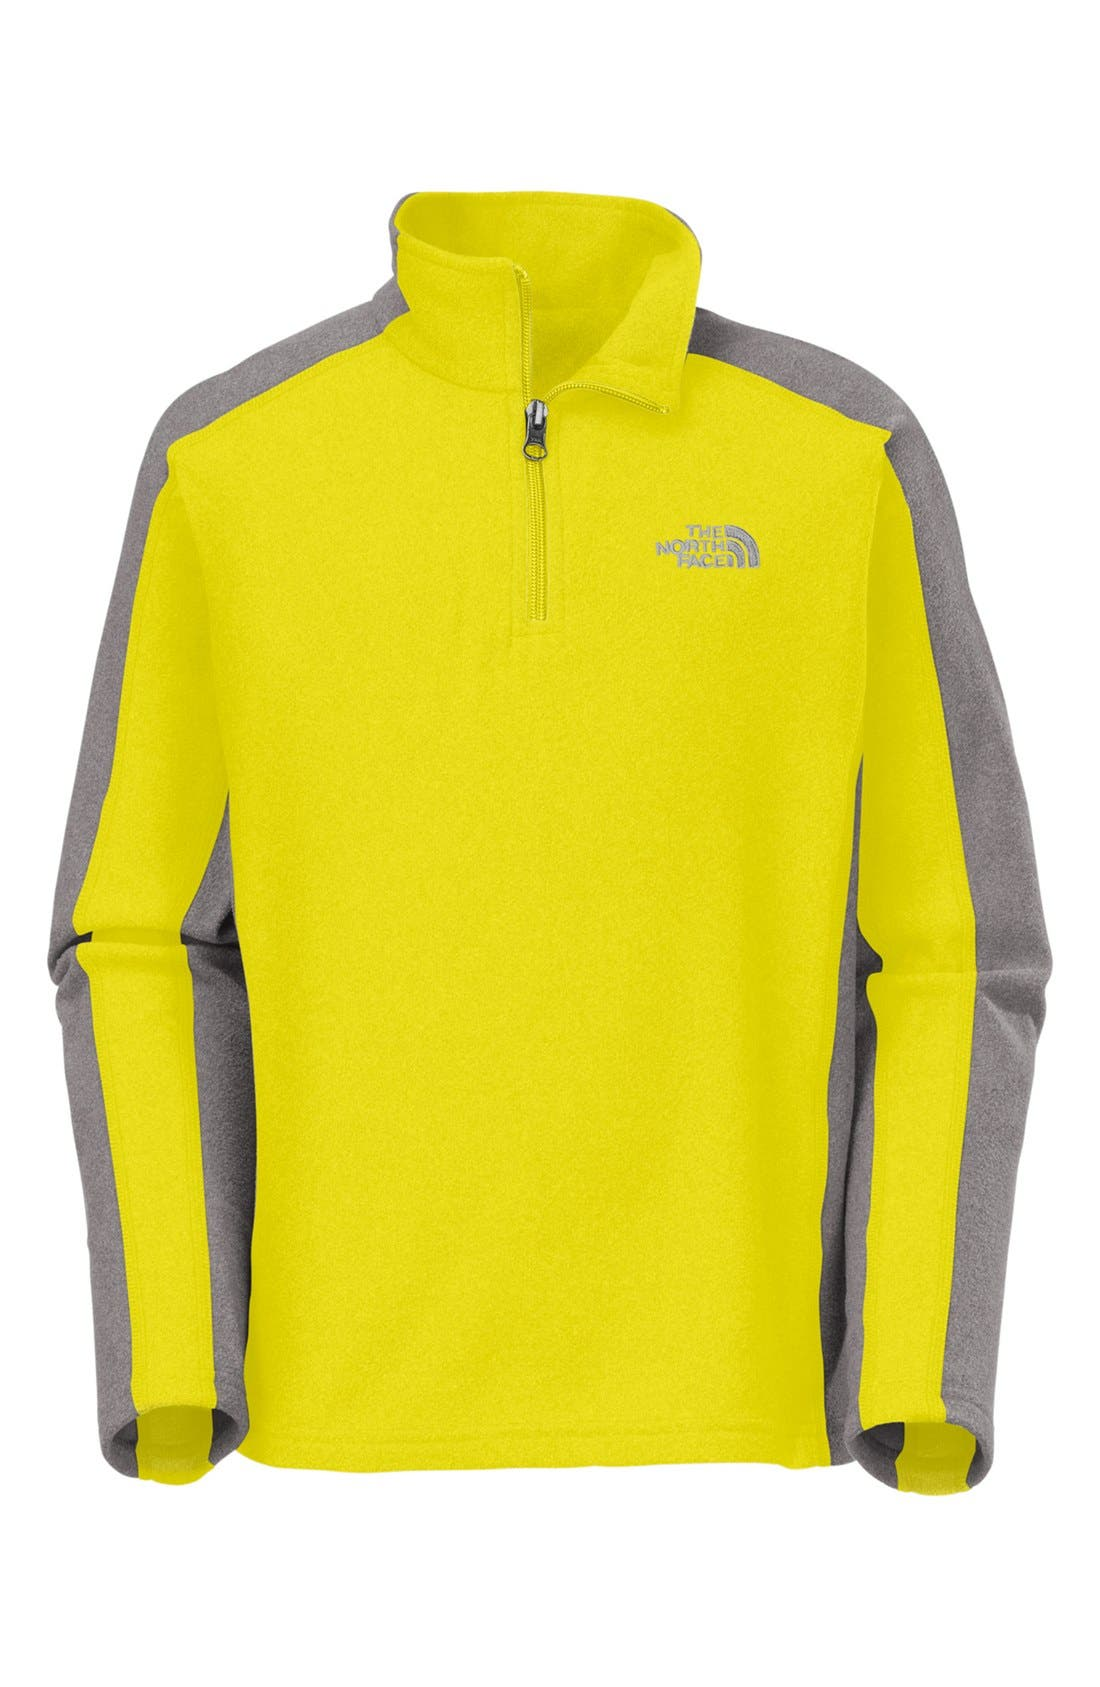 Alternate Image 1 Selected - The North Face 'Glacier' Quarter Zip Pullover (Little Boys)